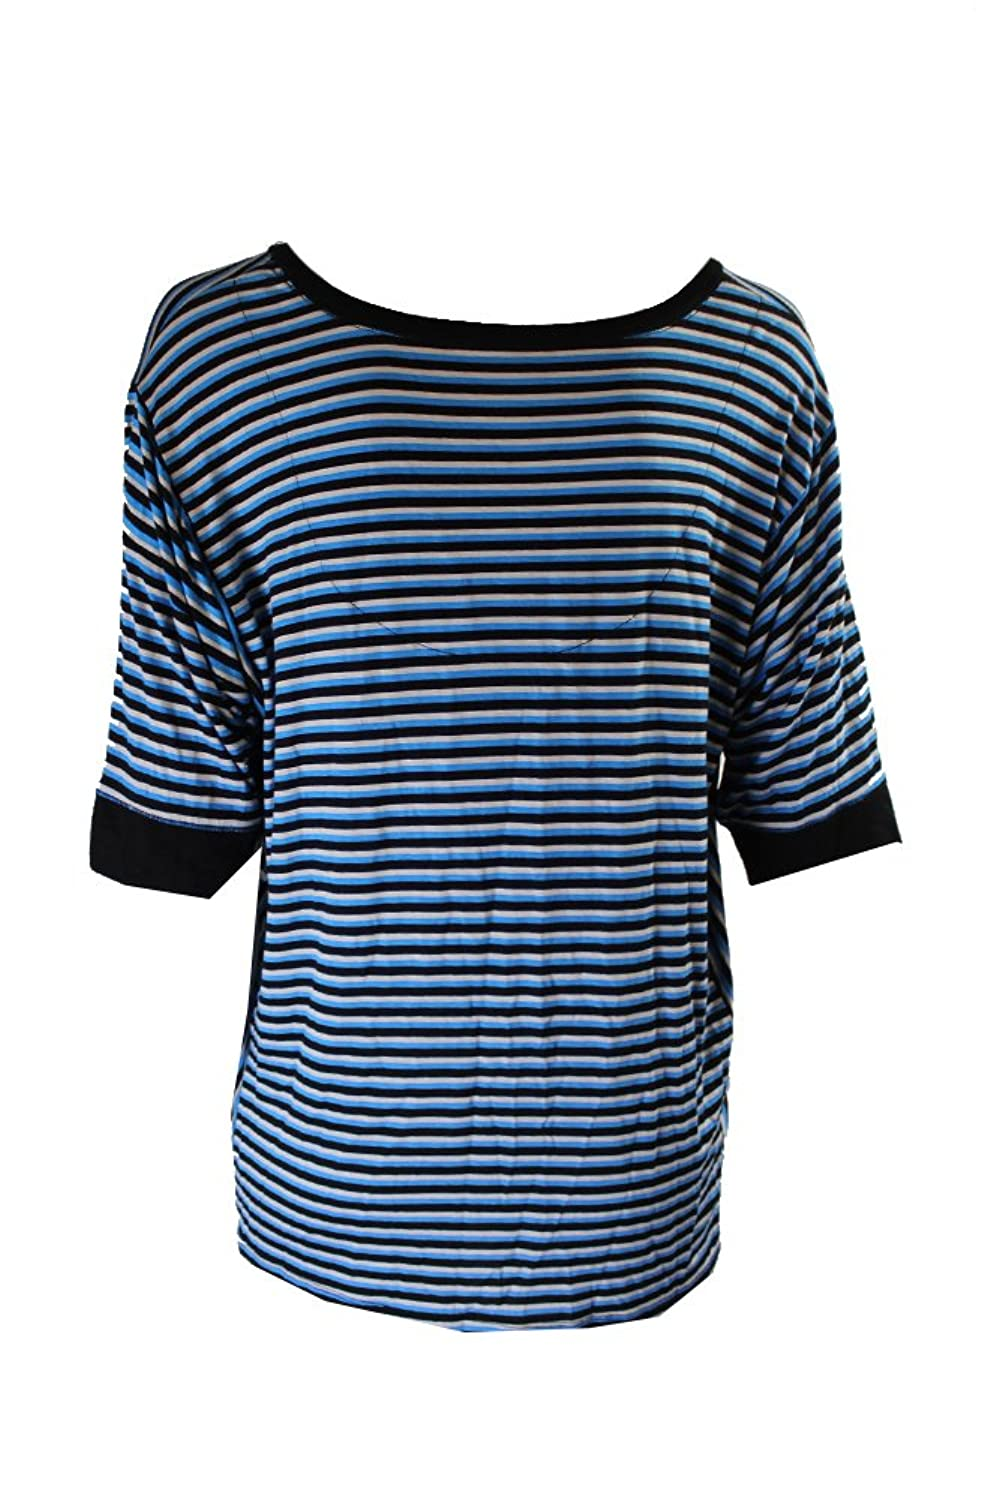 Dkny Womens Striped 3/4 Sleeve Pajama Sleep T-Shirt